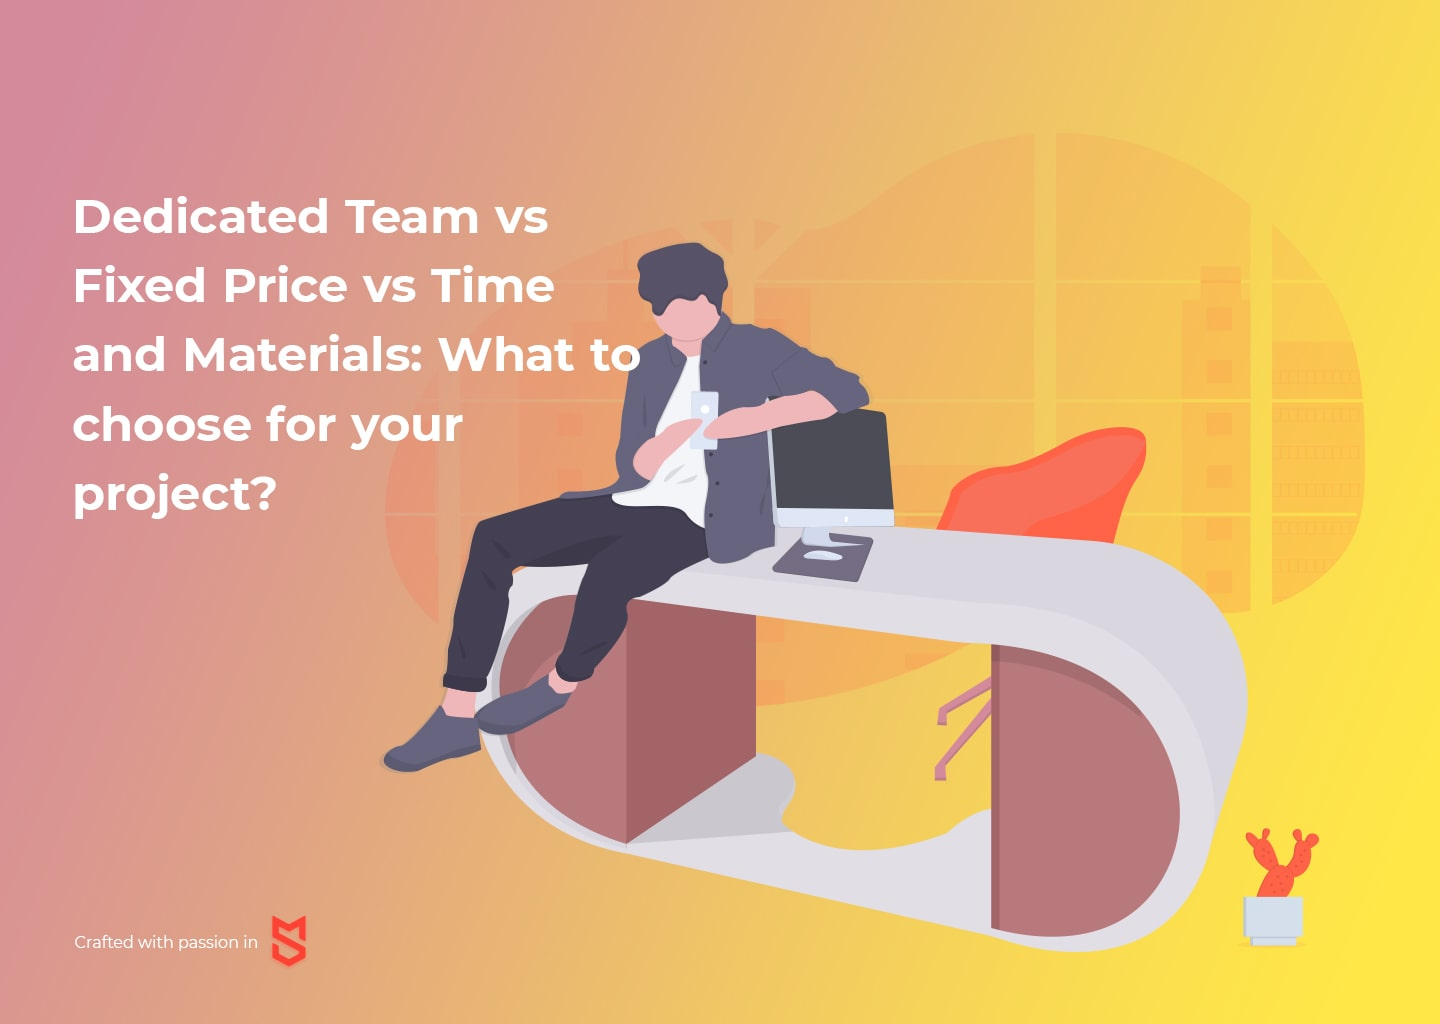 Dedicated Team vs Fixed Price vs Time and Materials: What to Choose for Your Project